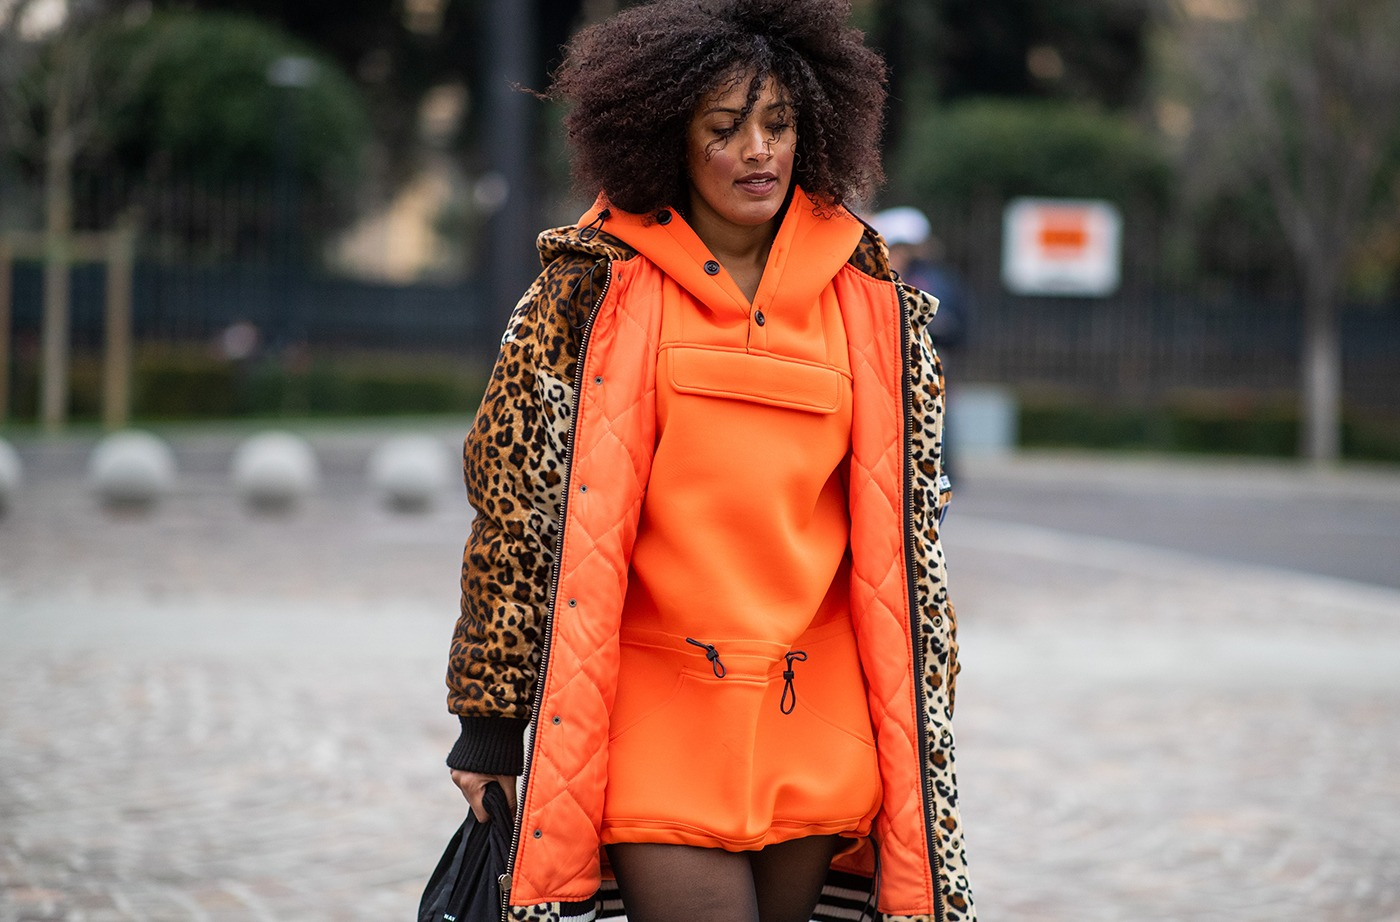 Thumbnail for Spring's top 5 athleisure trends are bold takes on classic staples